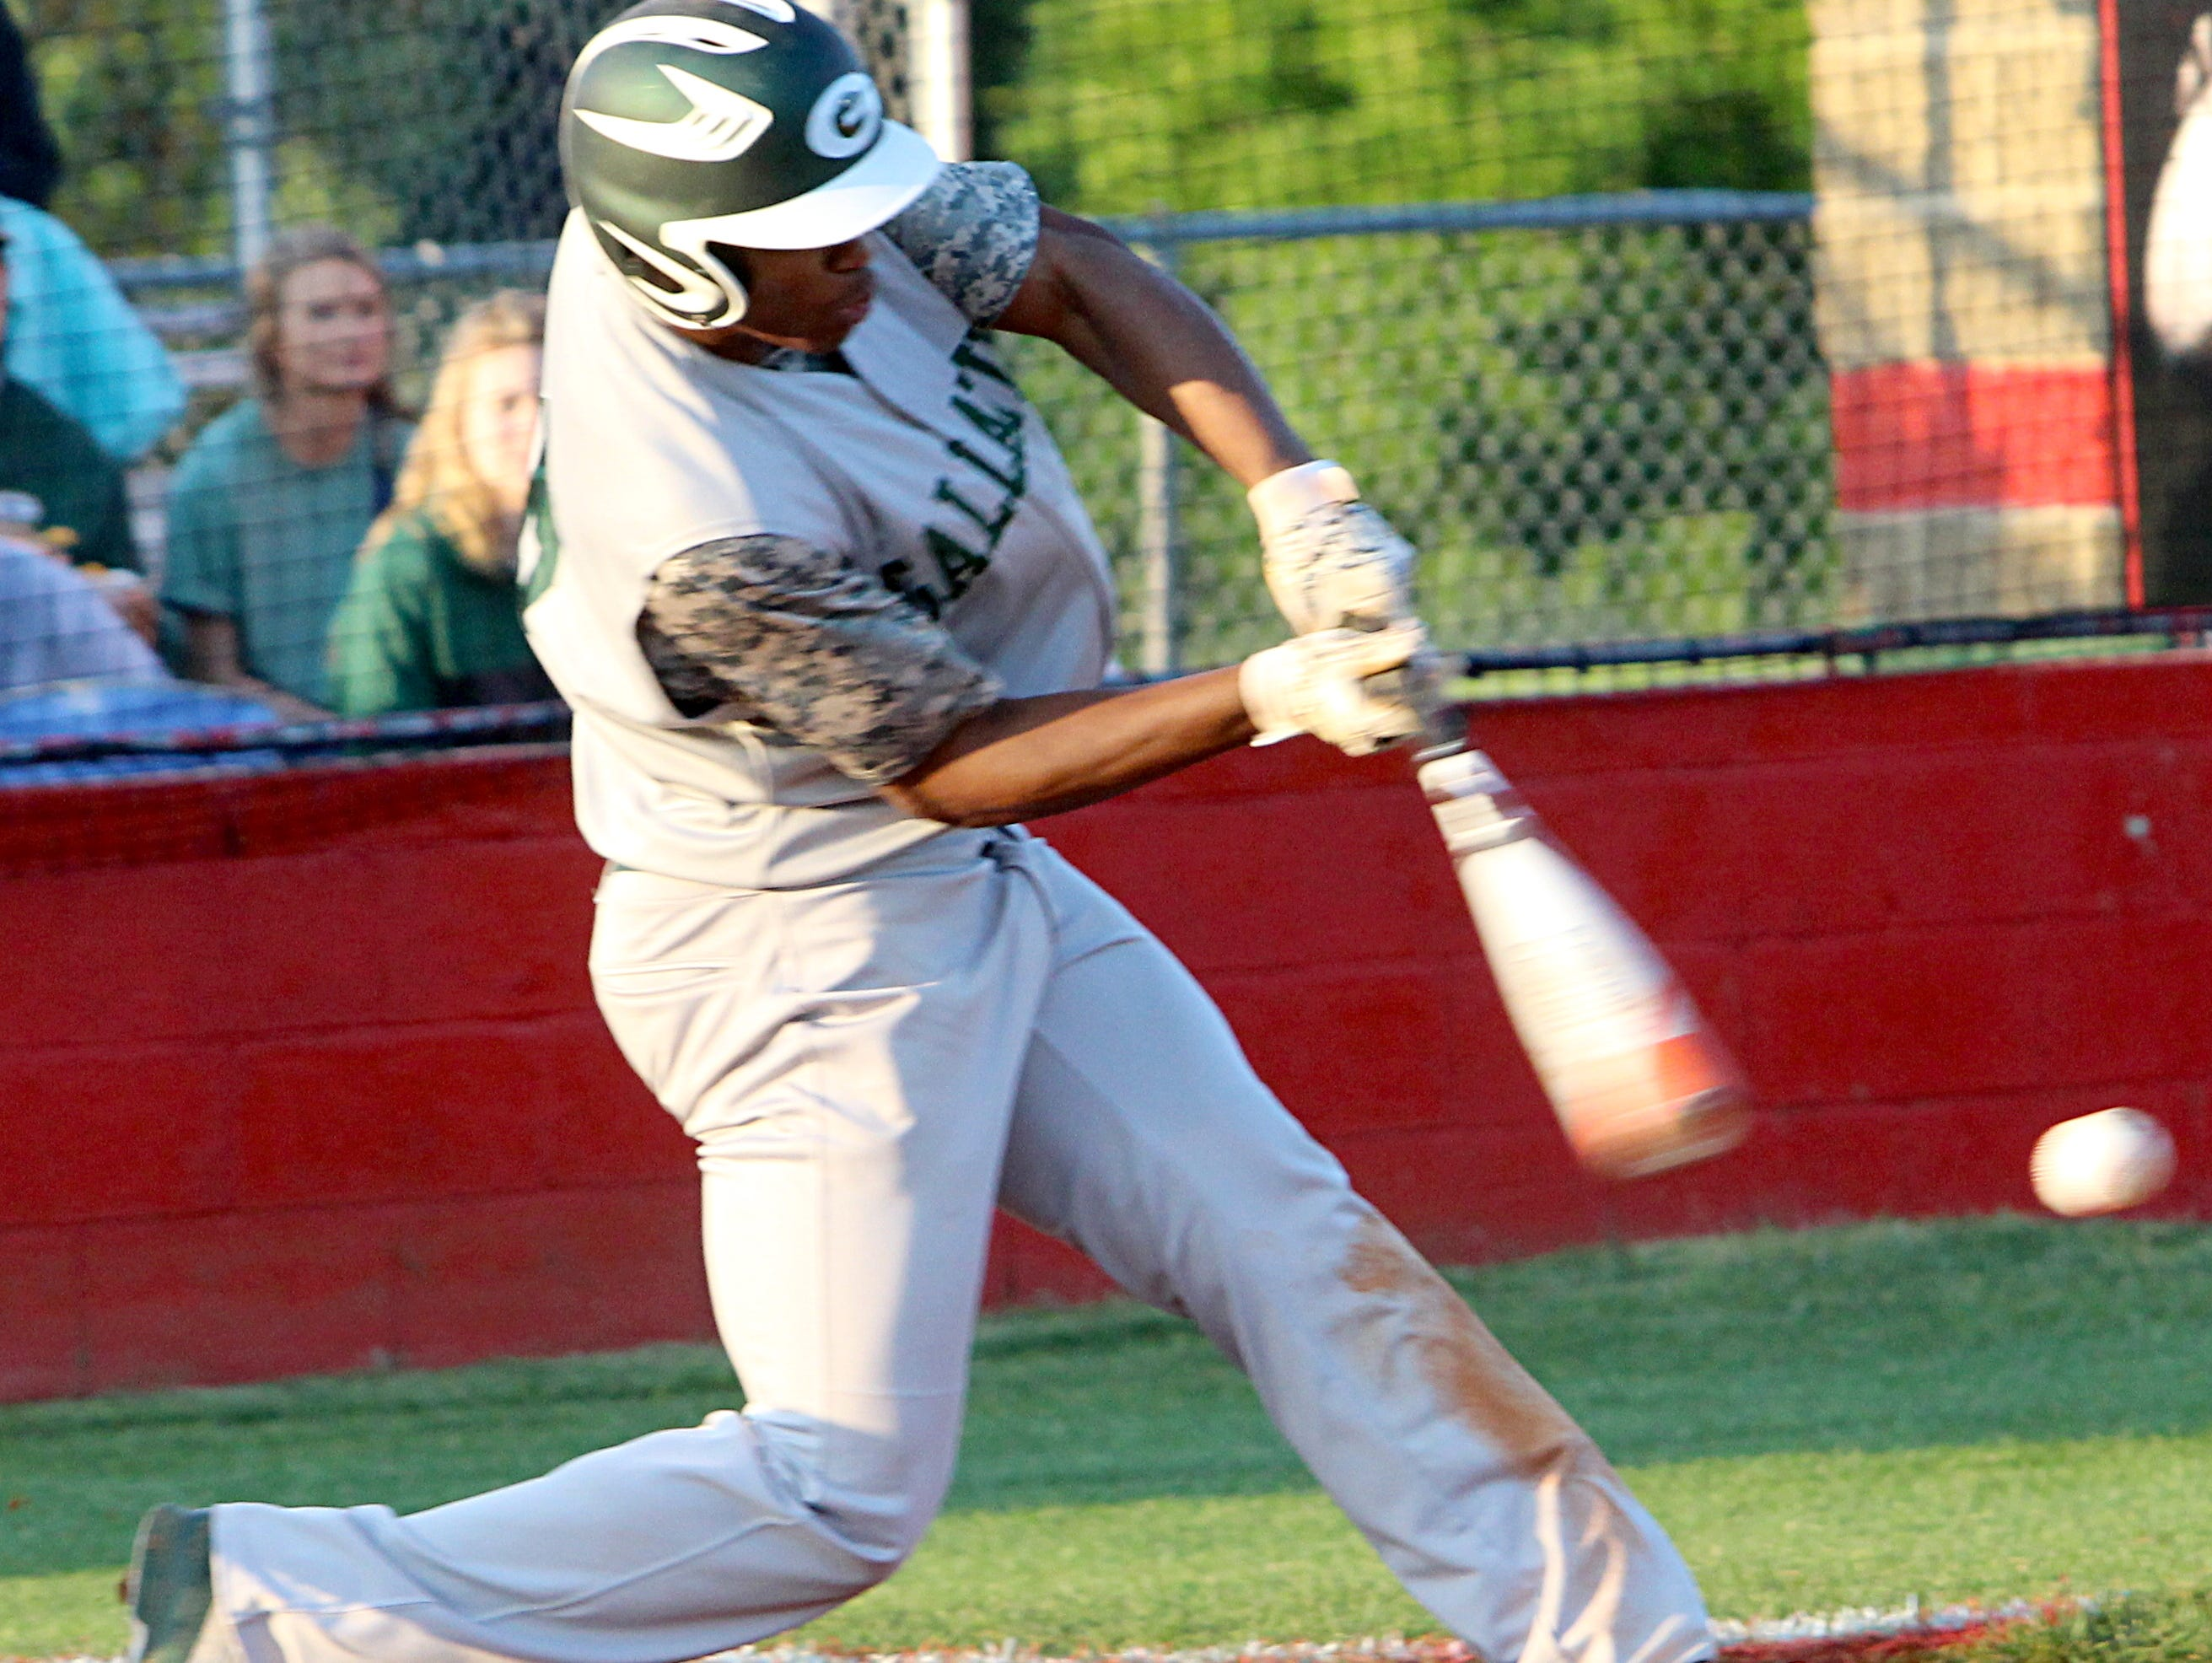 Jordan Mason hit .353 for the Green Wave baseball team last season. He's expected to start in center field for Gallatin in his senior year.